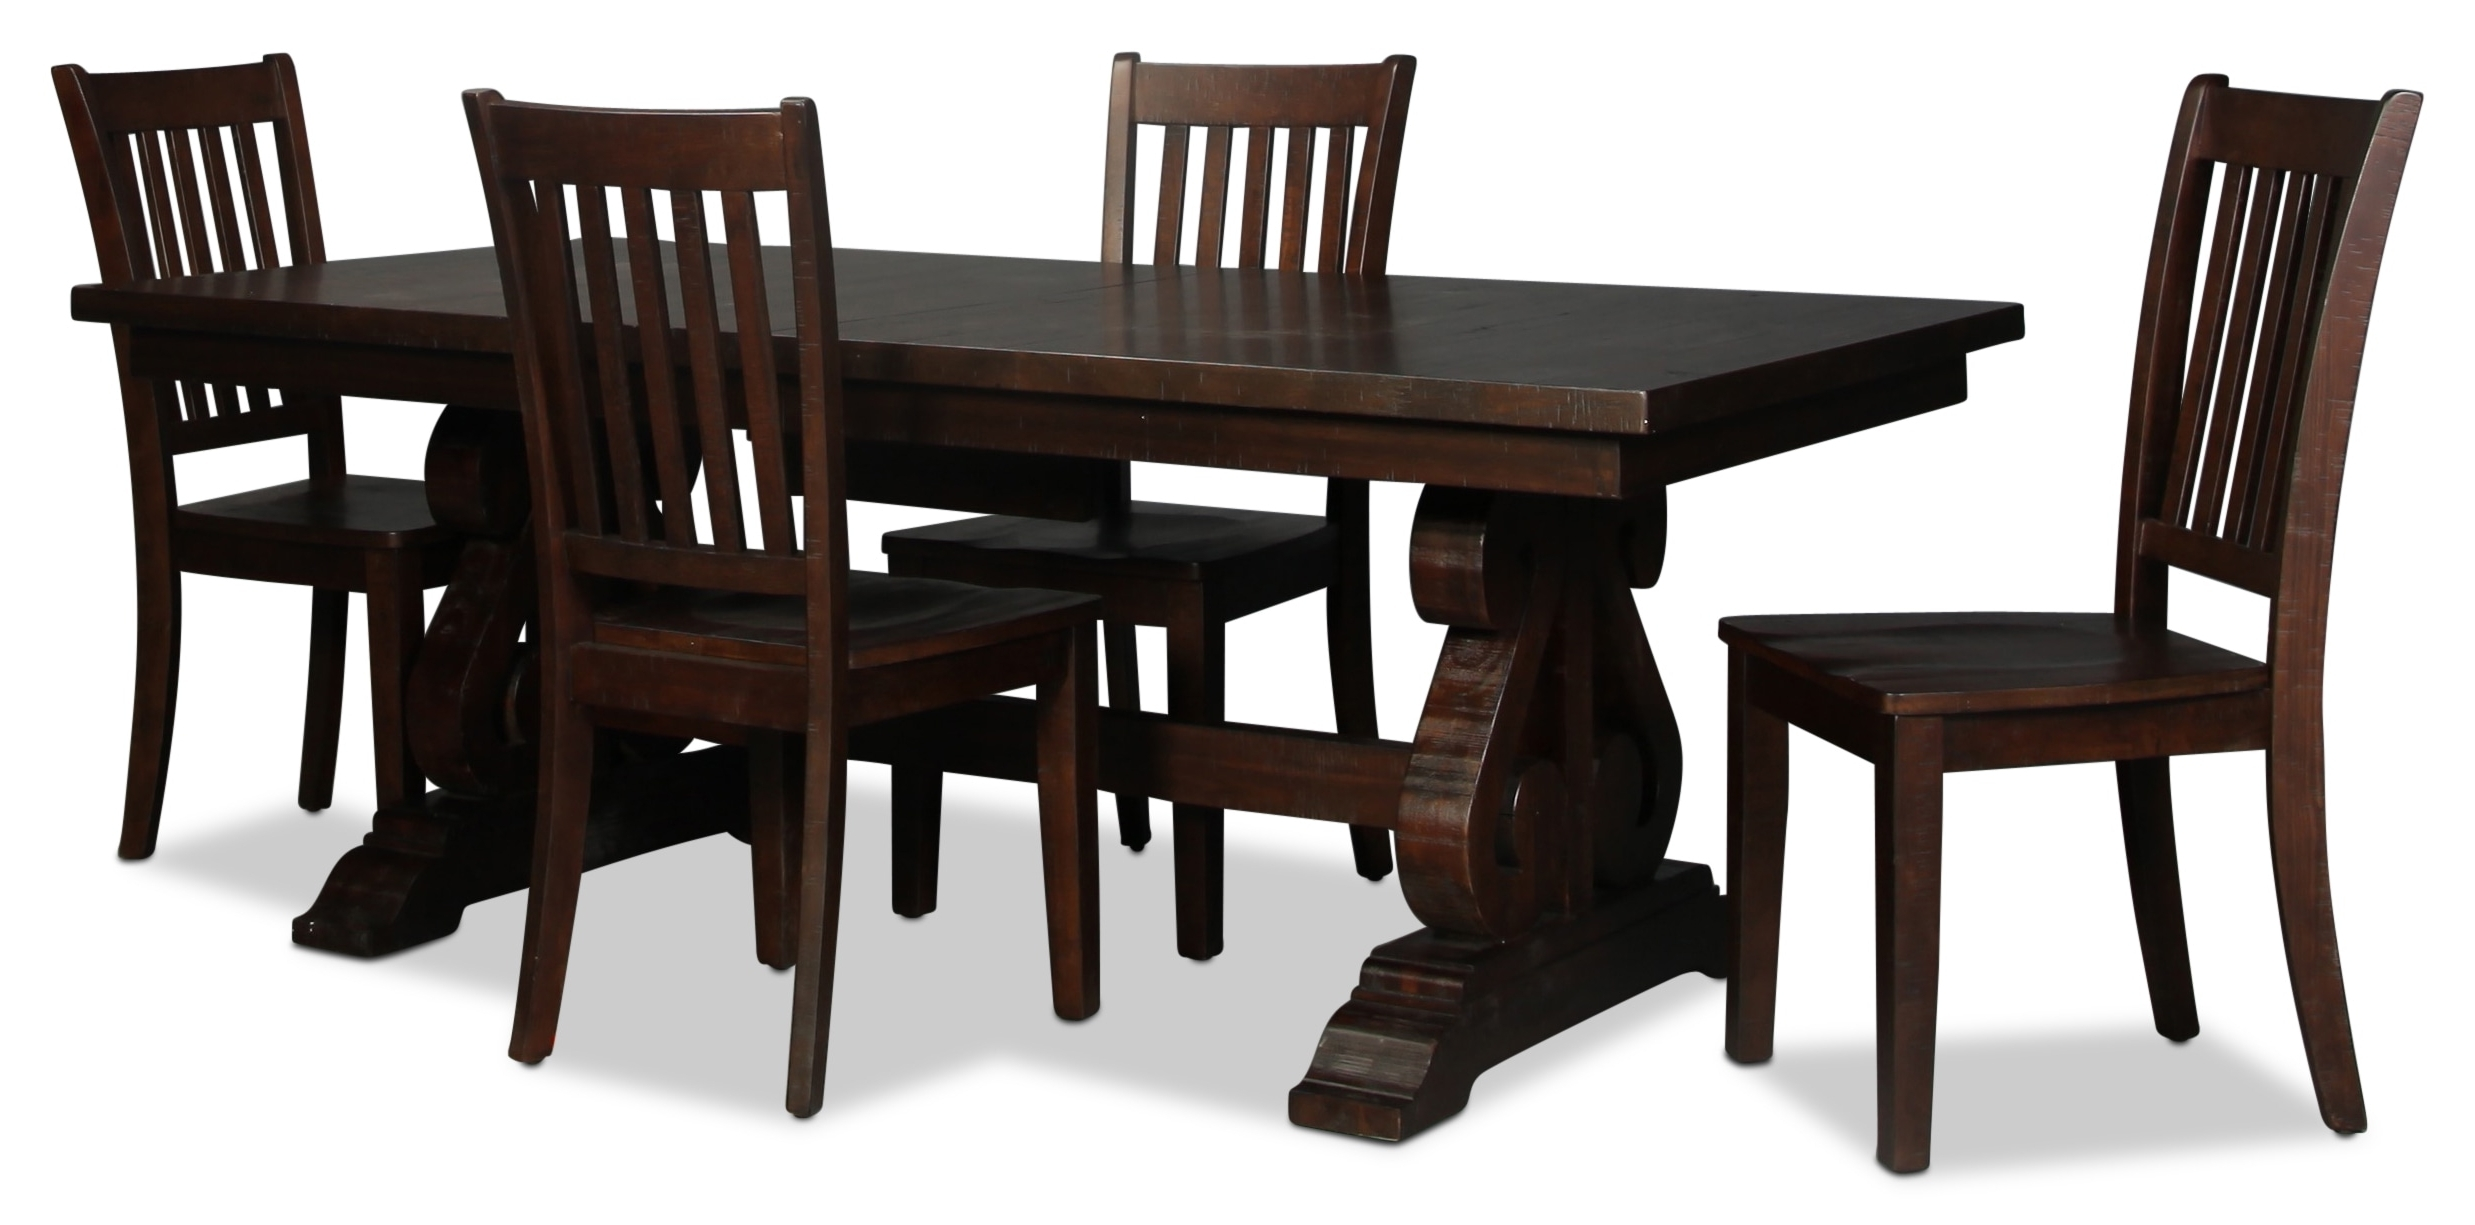 2018 Hudson Dining Tables And Chairs Pertaining To Hudson Table And 4 Side Chairs – Walnut (View 2 of 25)